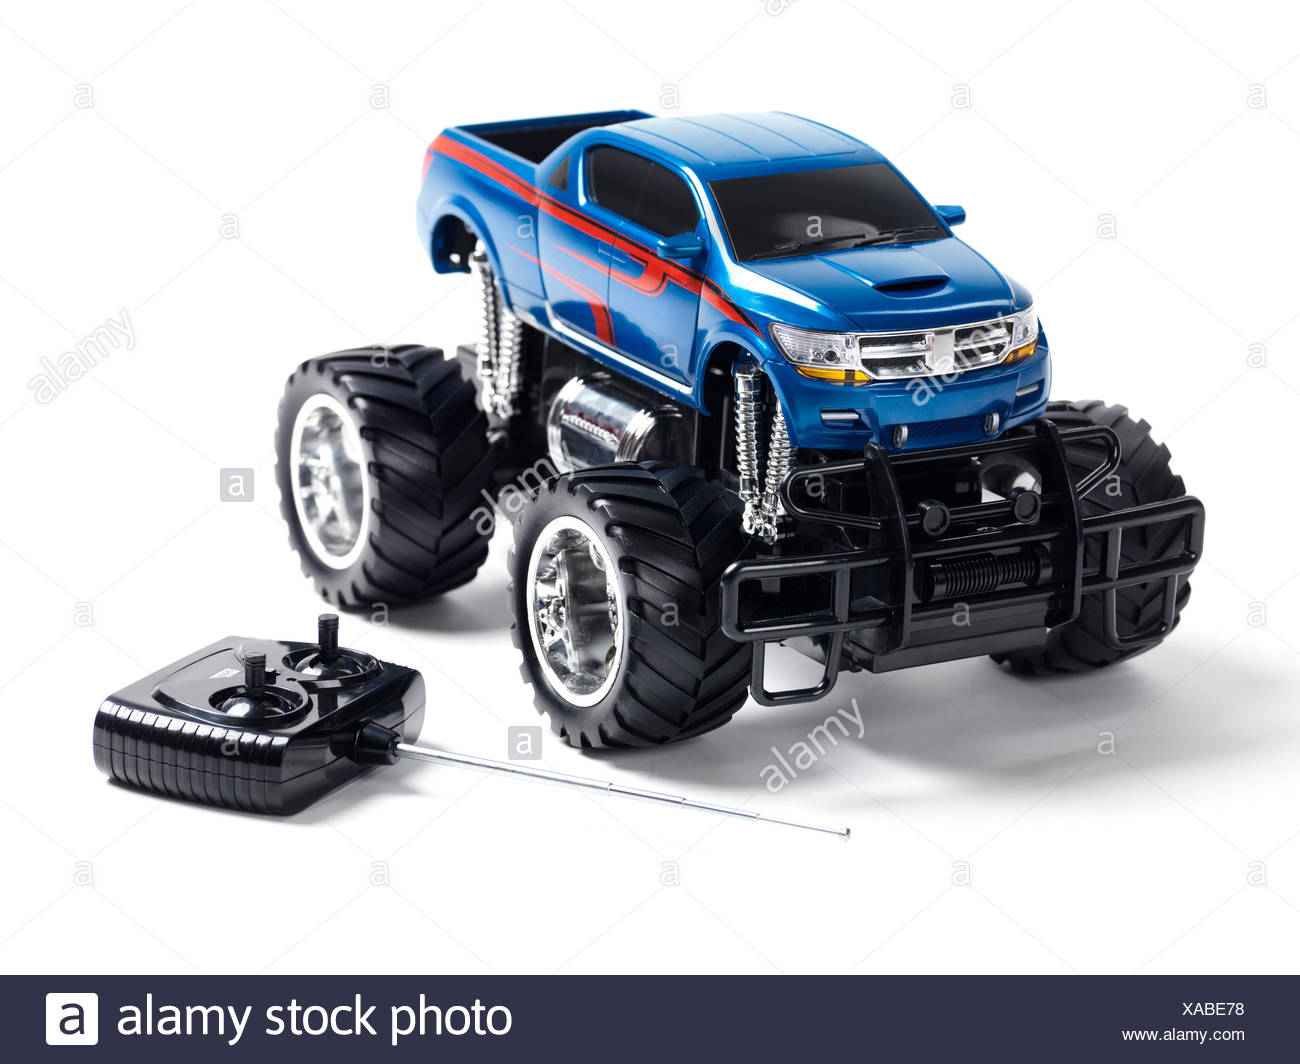 Radio controlled toy monster truck with a remote control - Stock Image